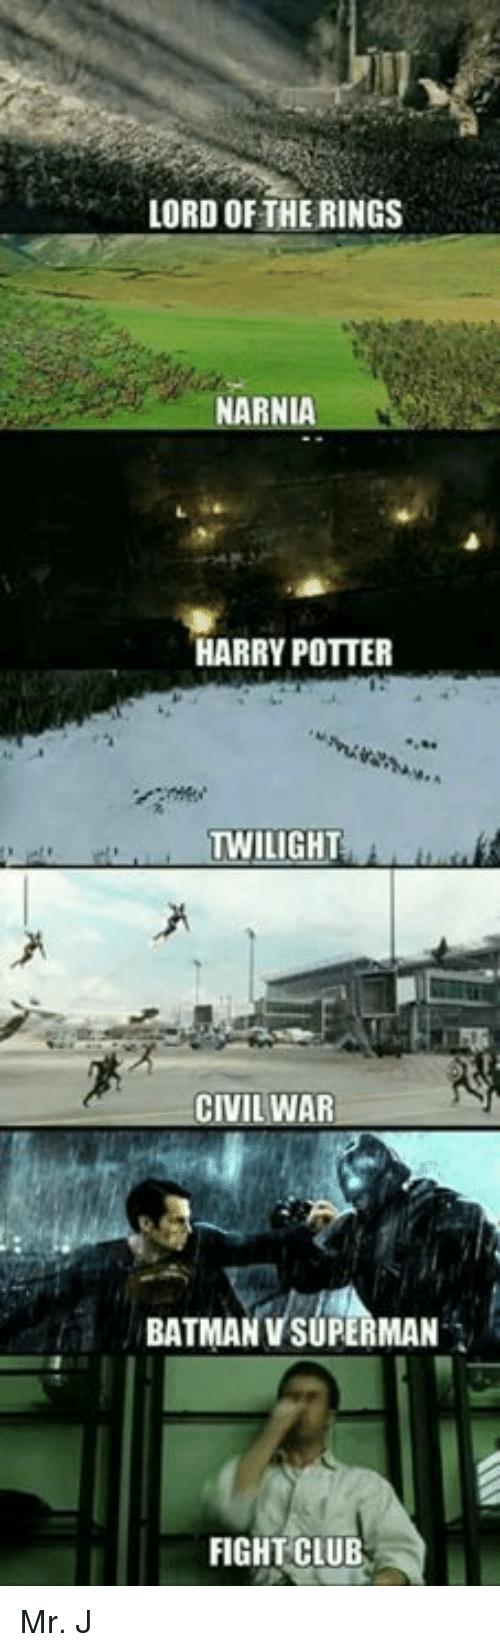 Harry Potter Lord Of The Rings Narnia And Similar